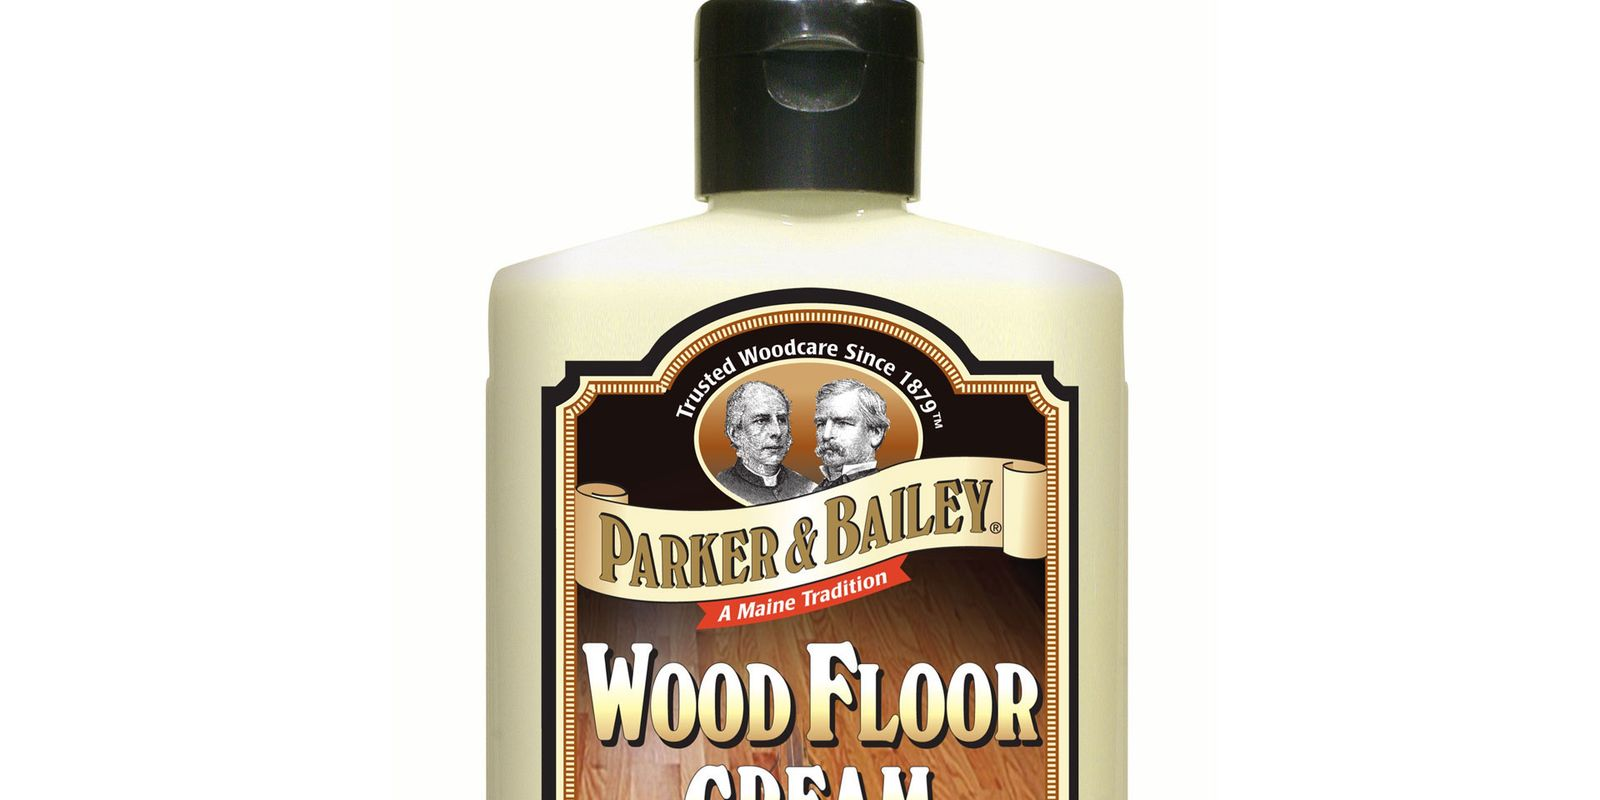 parker & bailey wood floor cleaner review